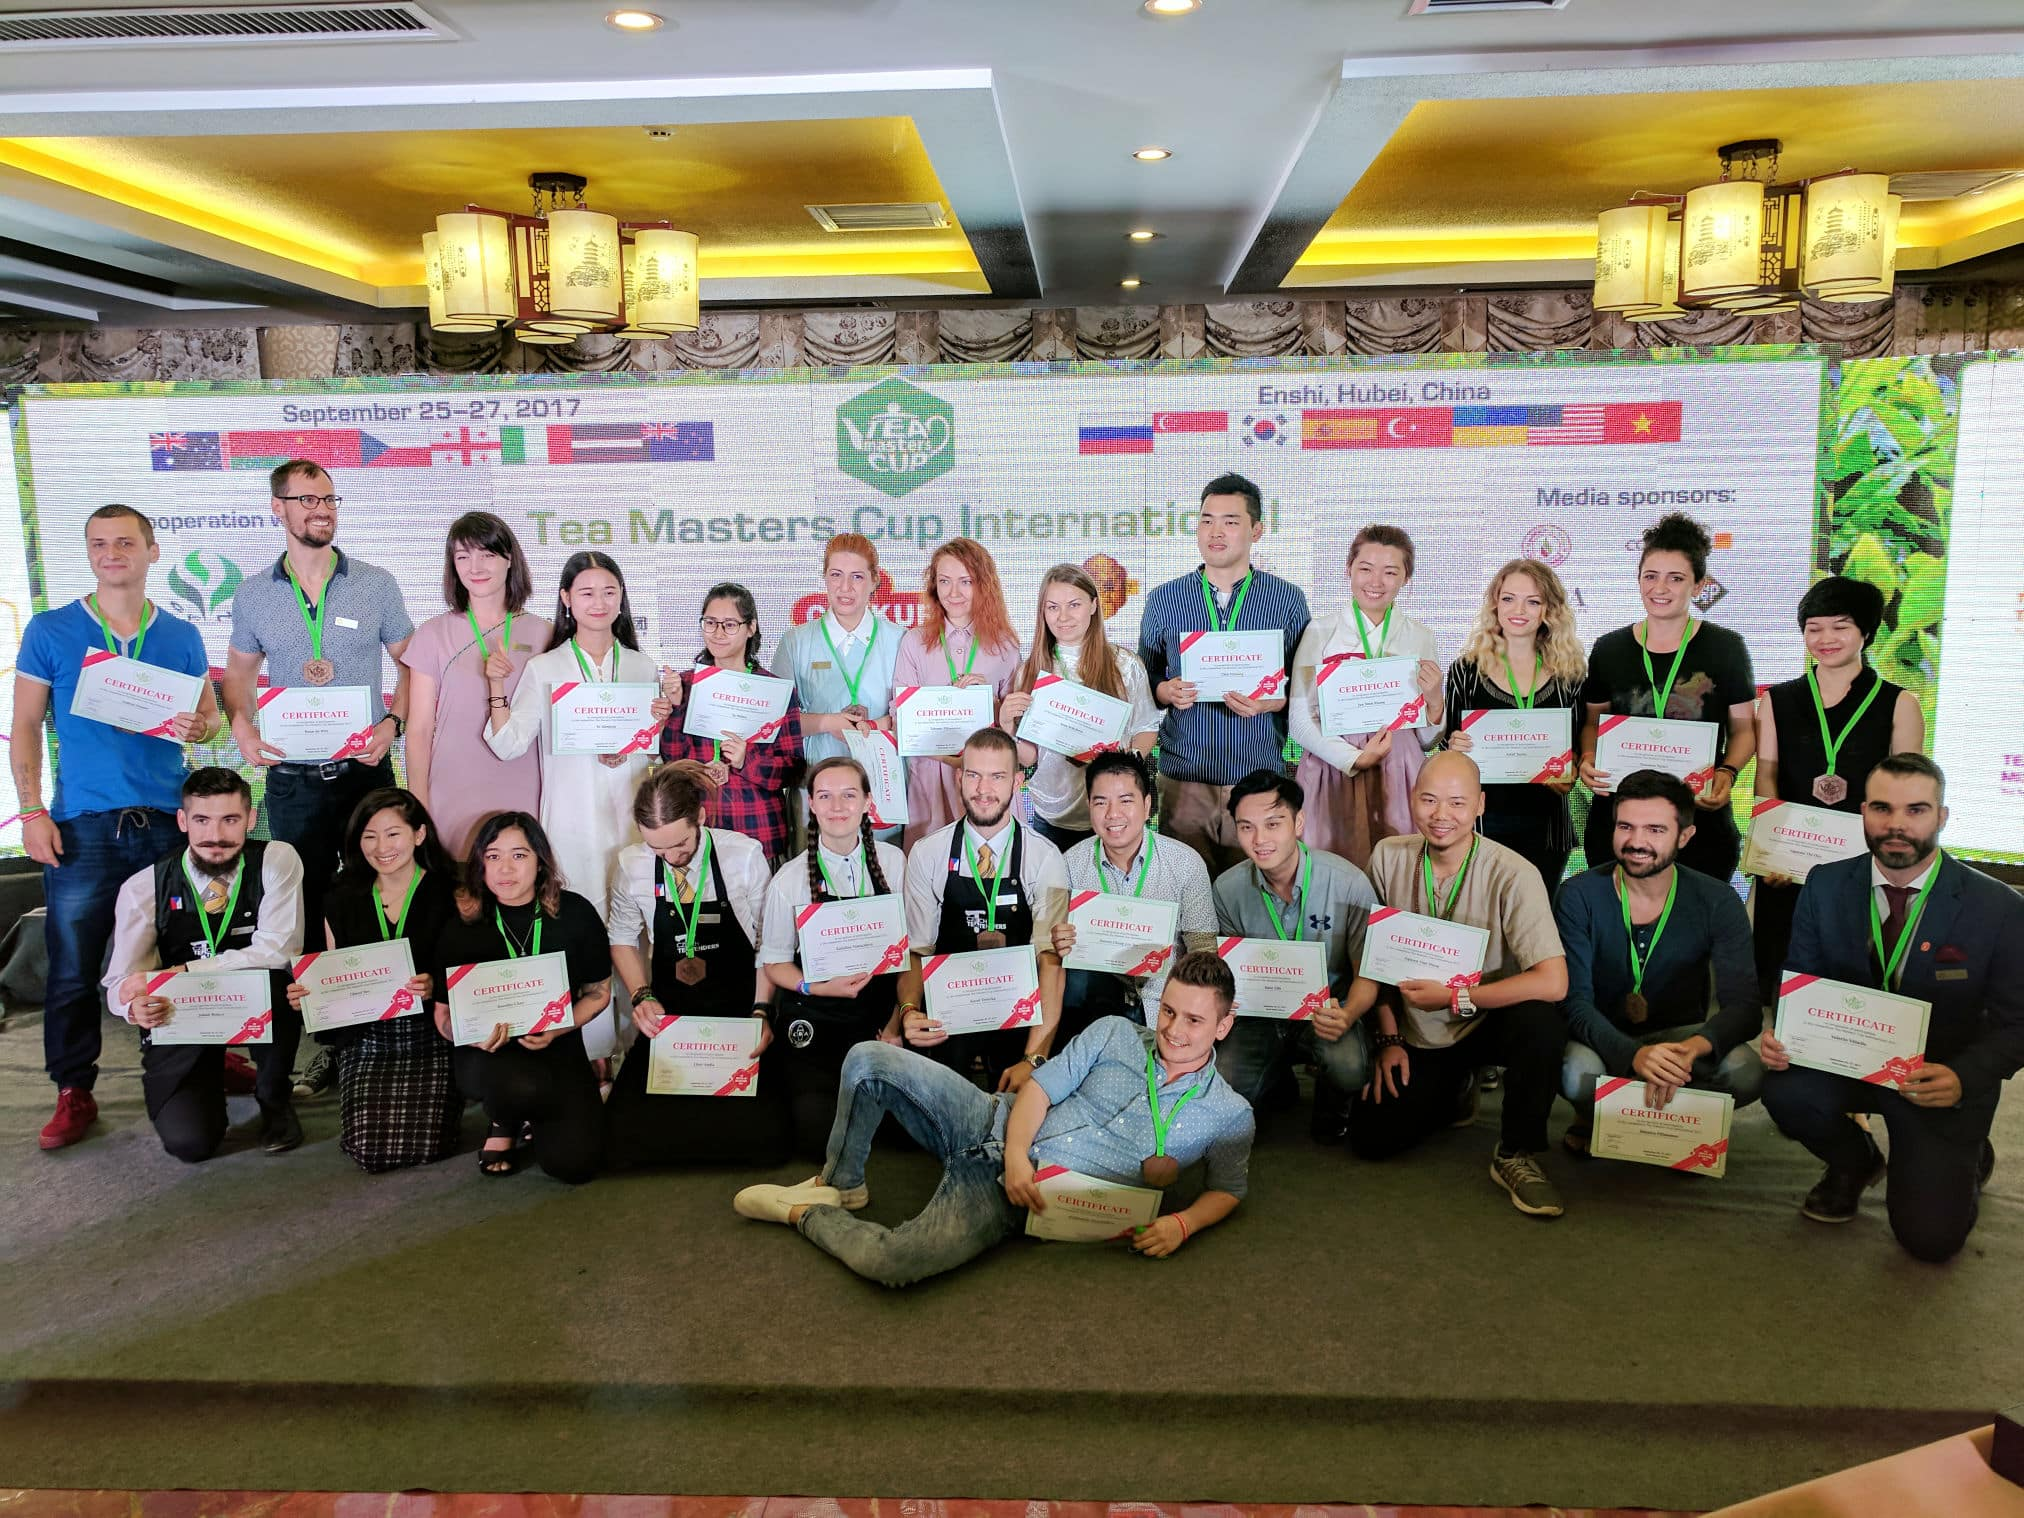 Tea Master's Cup Finals 2017 in Enshi, Hubei China